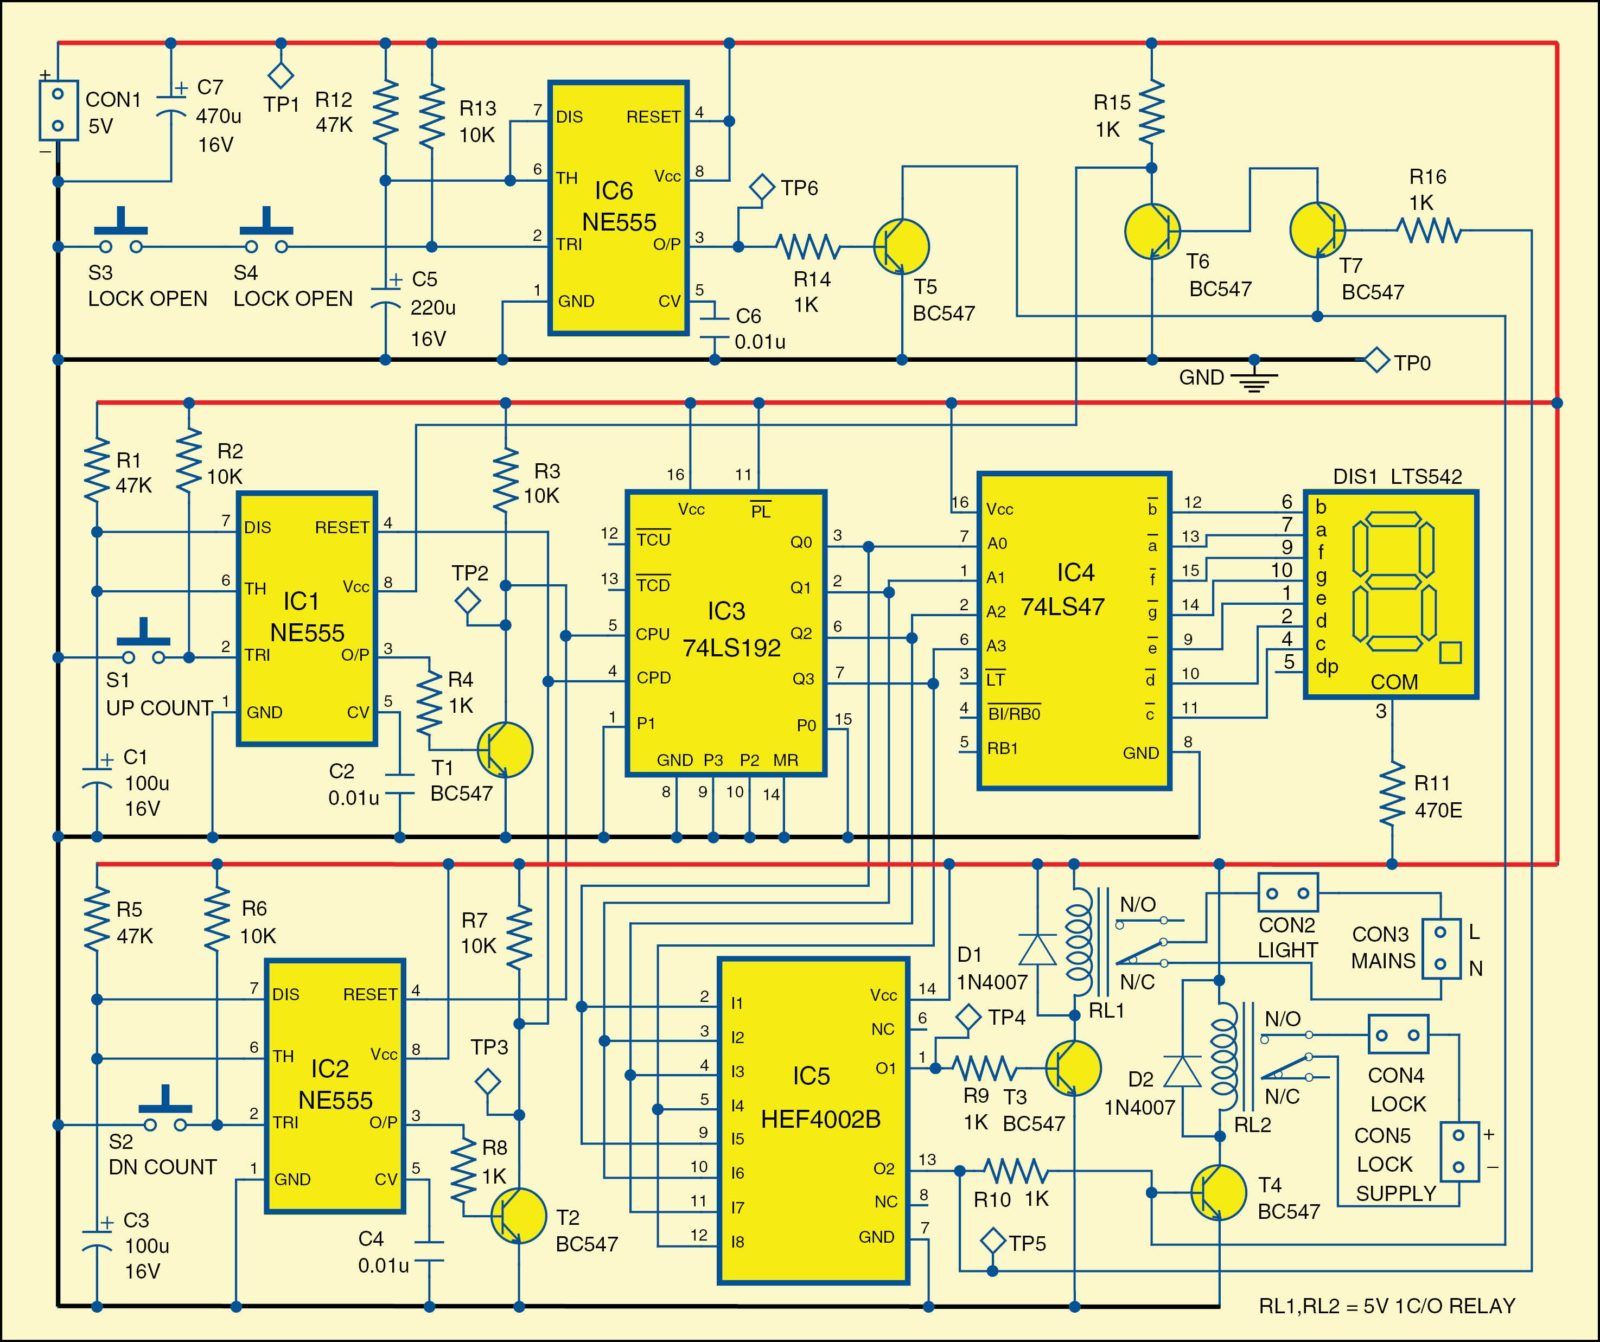 Automatic Room Lock And Lights Circuit Electronics For You Automotive Circuits Projects 17 1 Diagram Of The 4e6 Fig 2